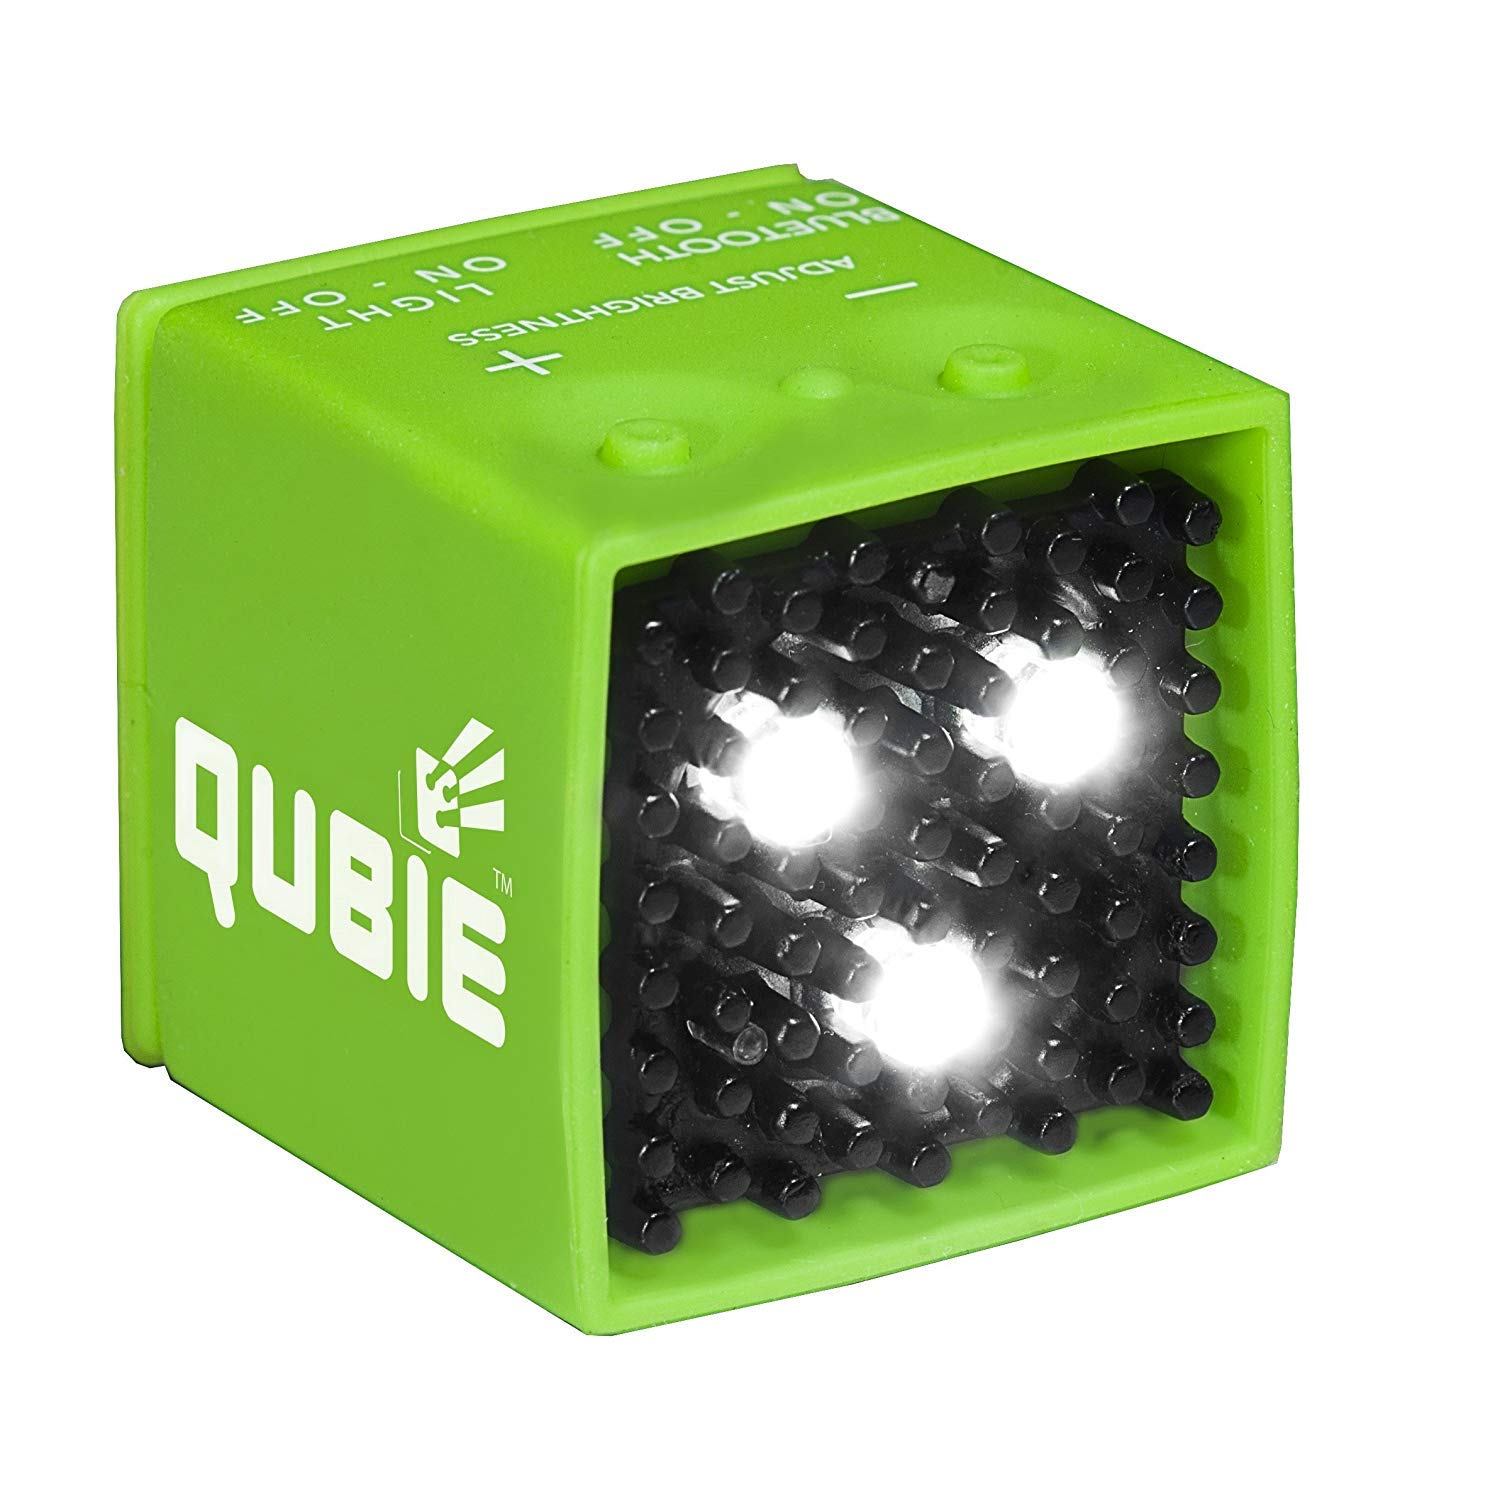 QUBIE - Bluetooth LED Light (Green) for photography and lighting by Streetbeat Studios